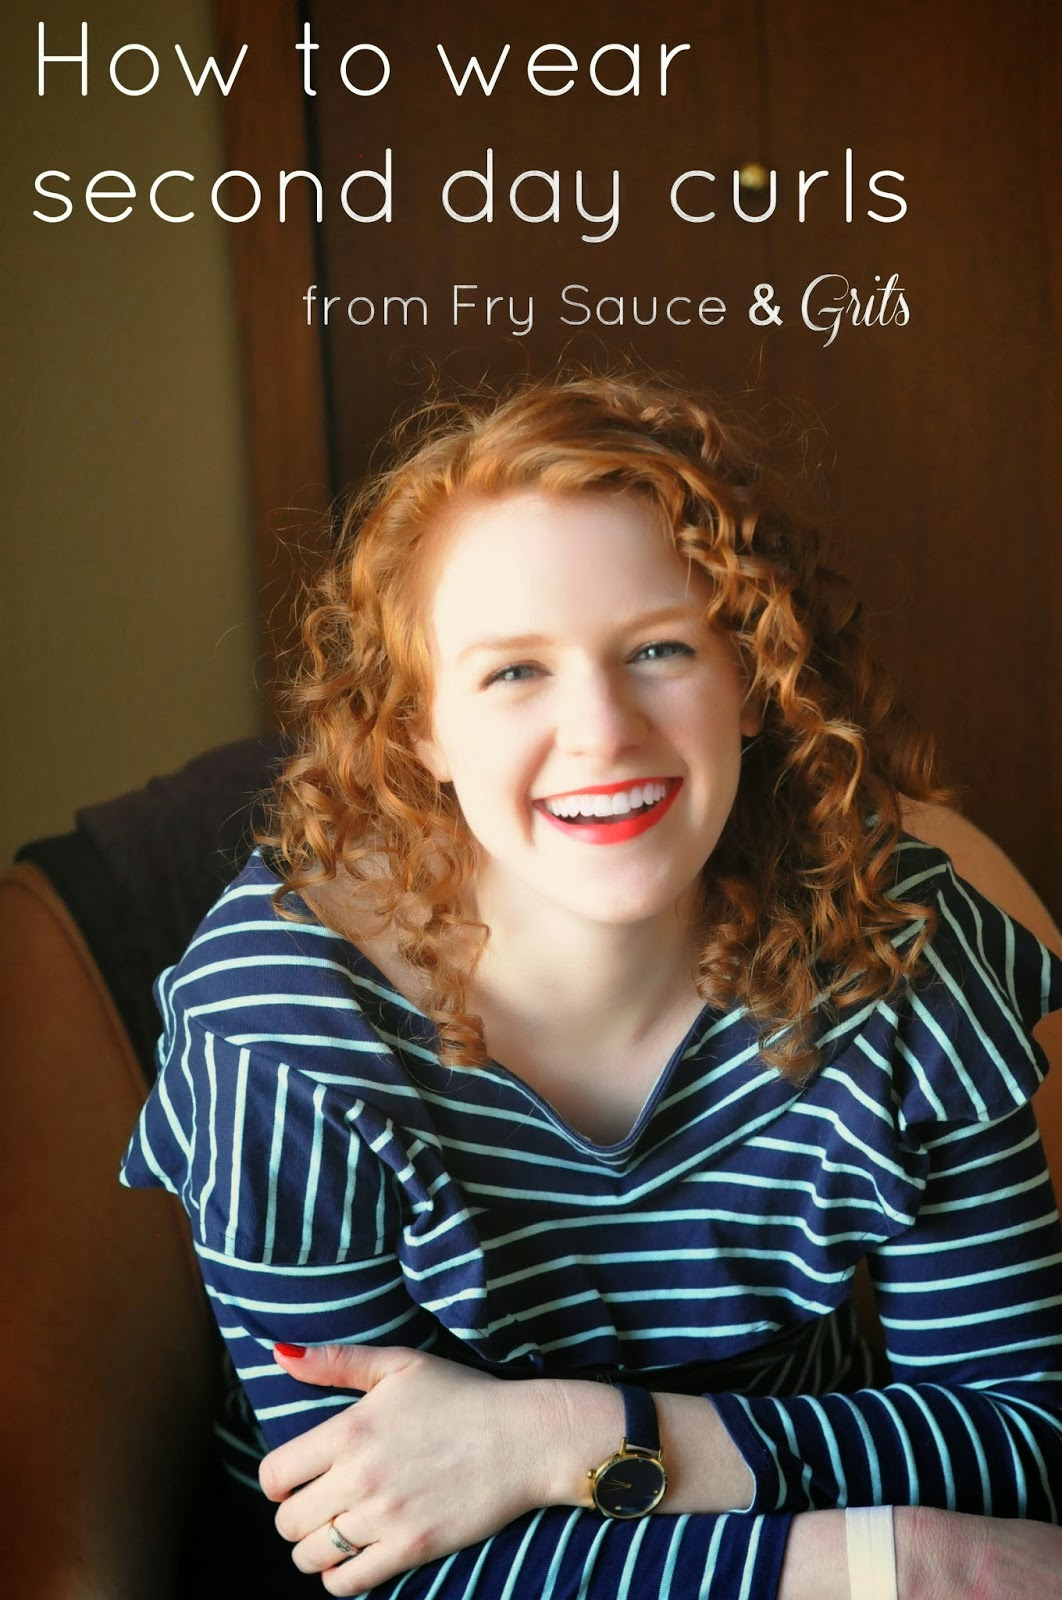 http://www.frysauceandgrits.com/2014/03/how-to-wear-second-day-curls.html